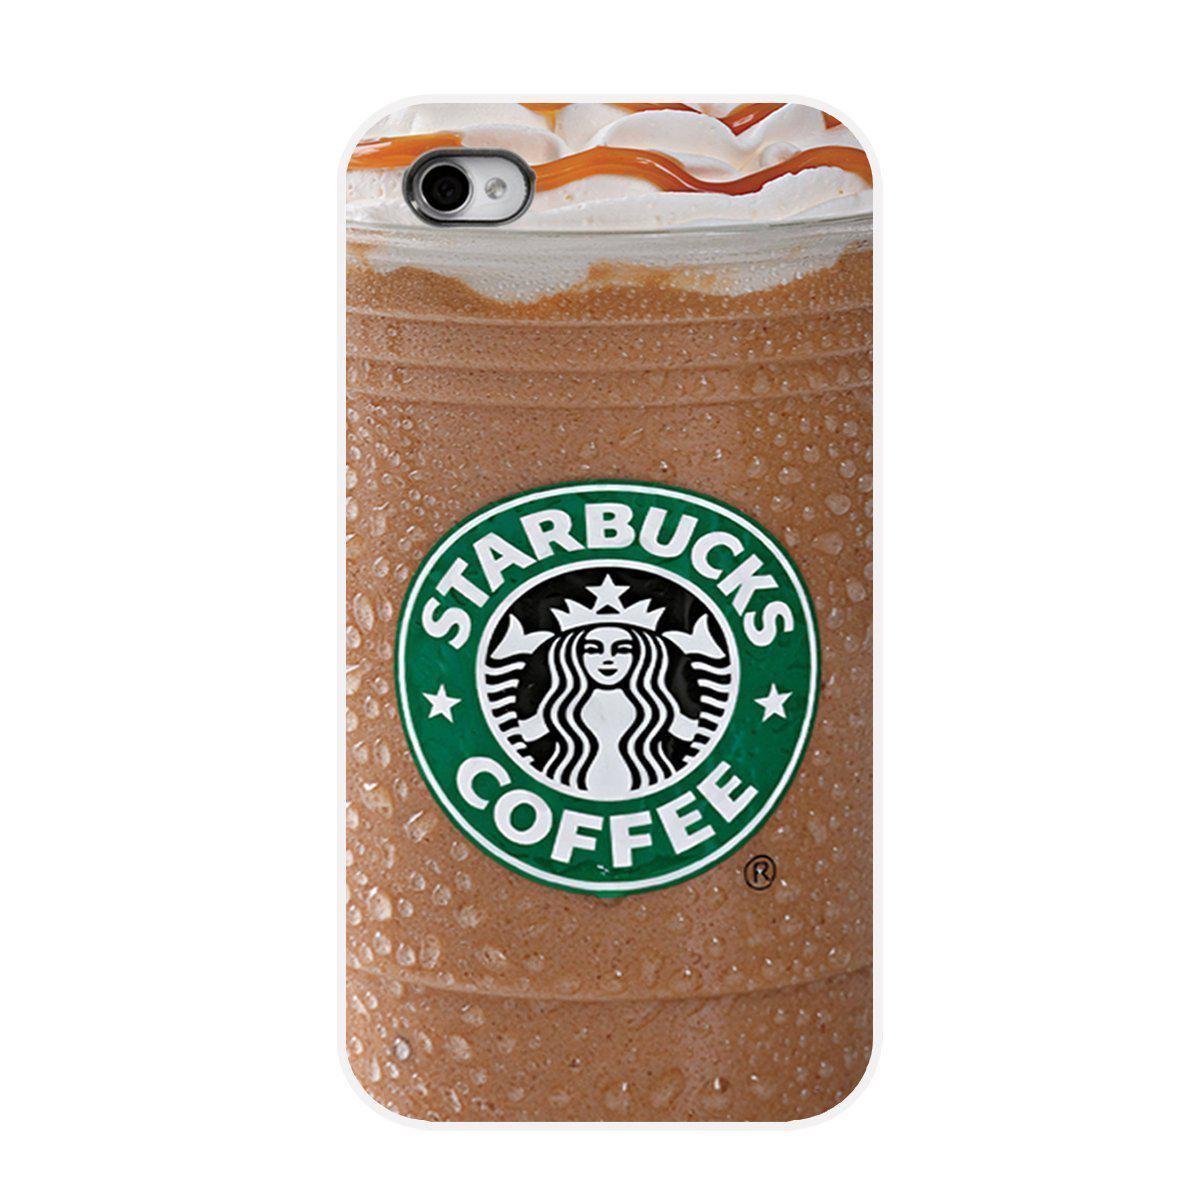 iphone 6 cases and covers for girls